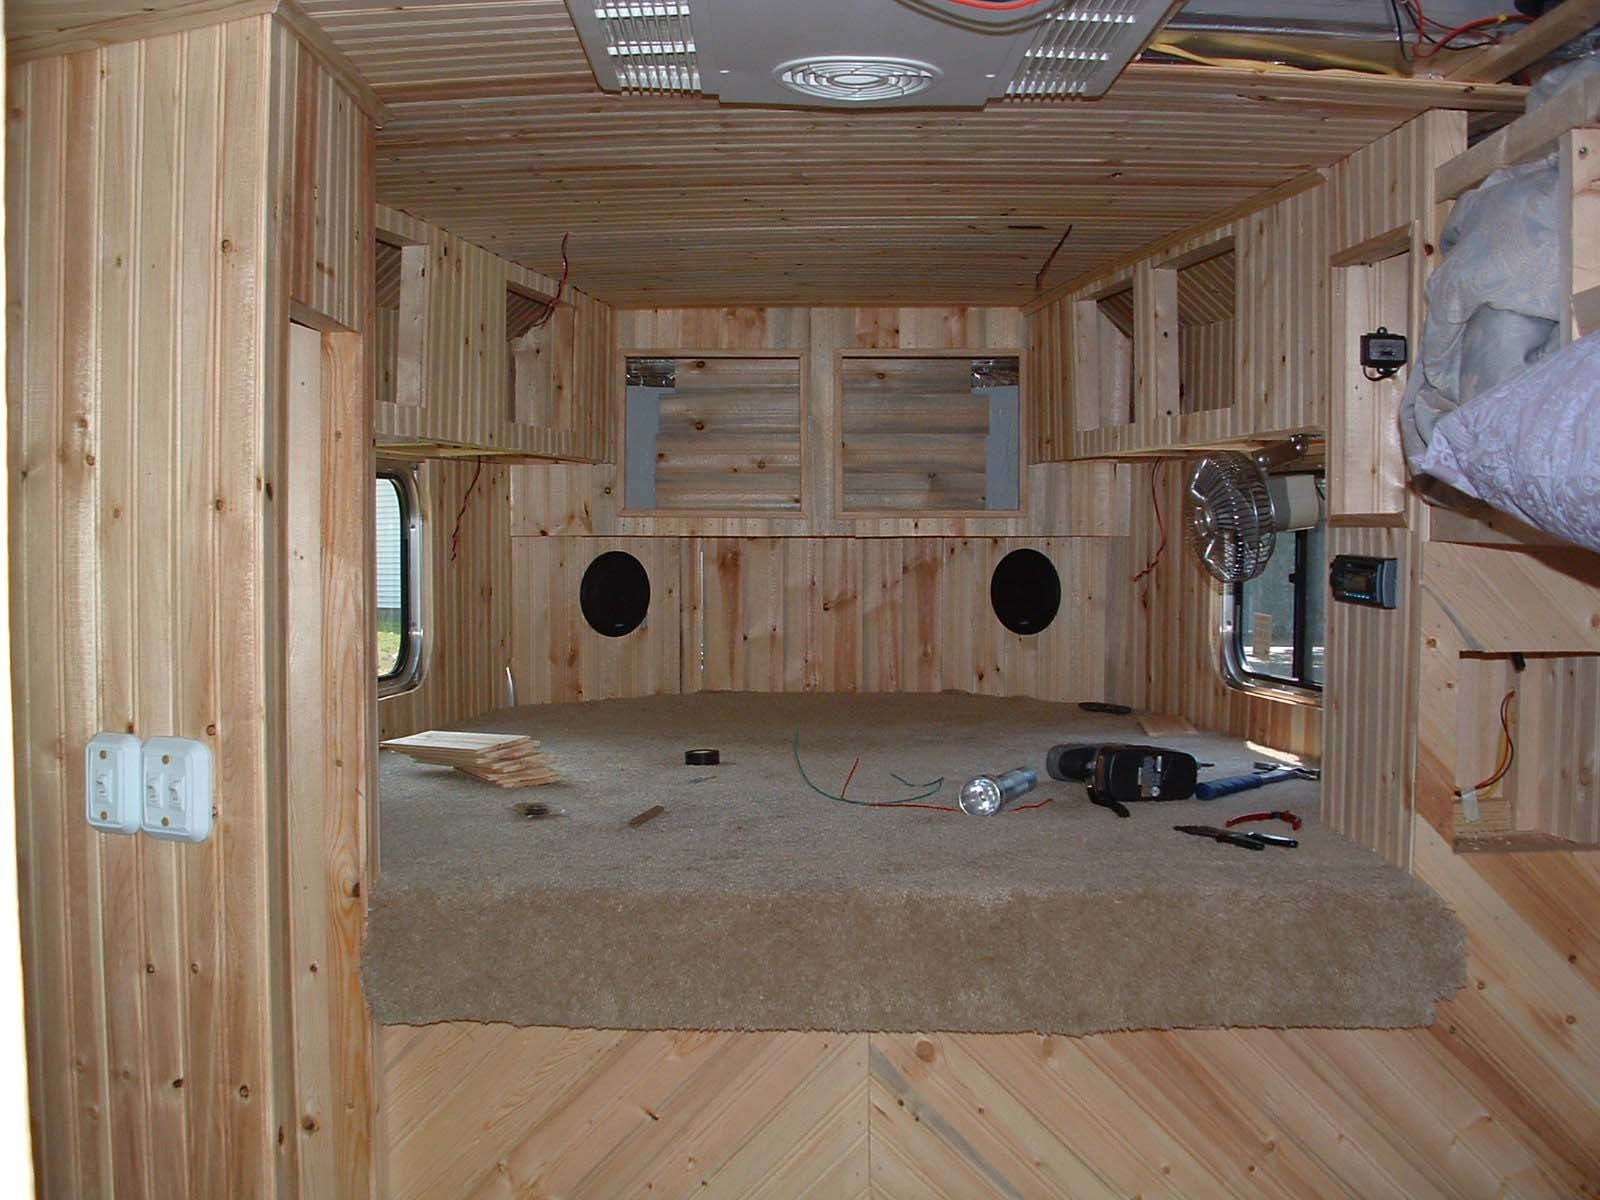 Diy Horse Trailer Conversion Step By Step Horse Trailer Living Quarters Horse Trailer Trailer Living